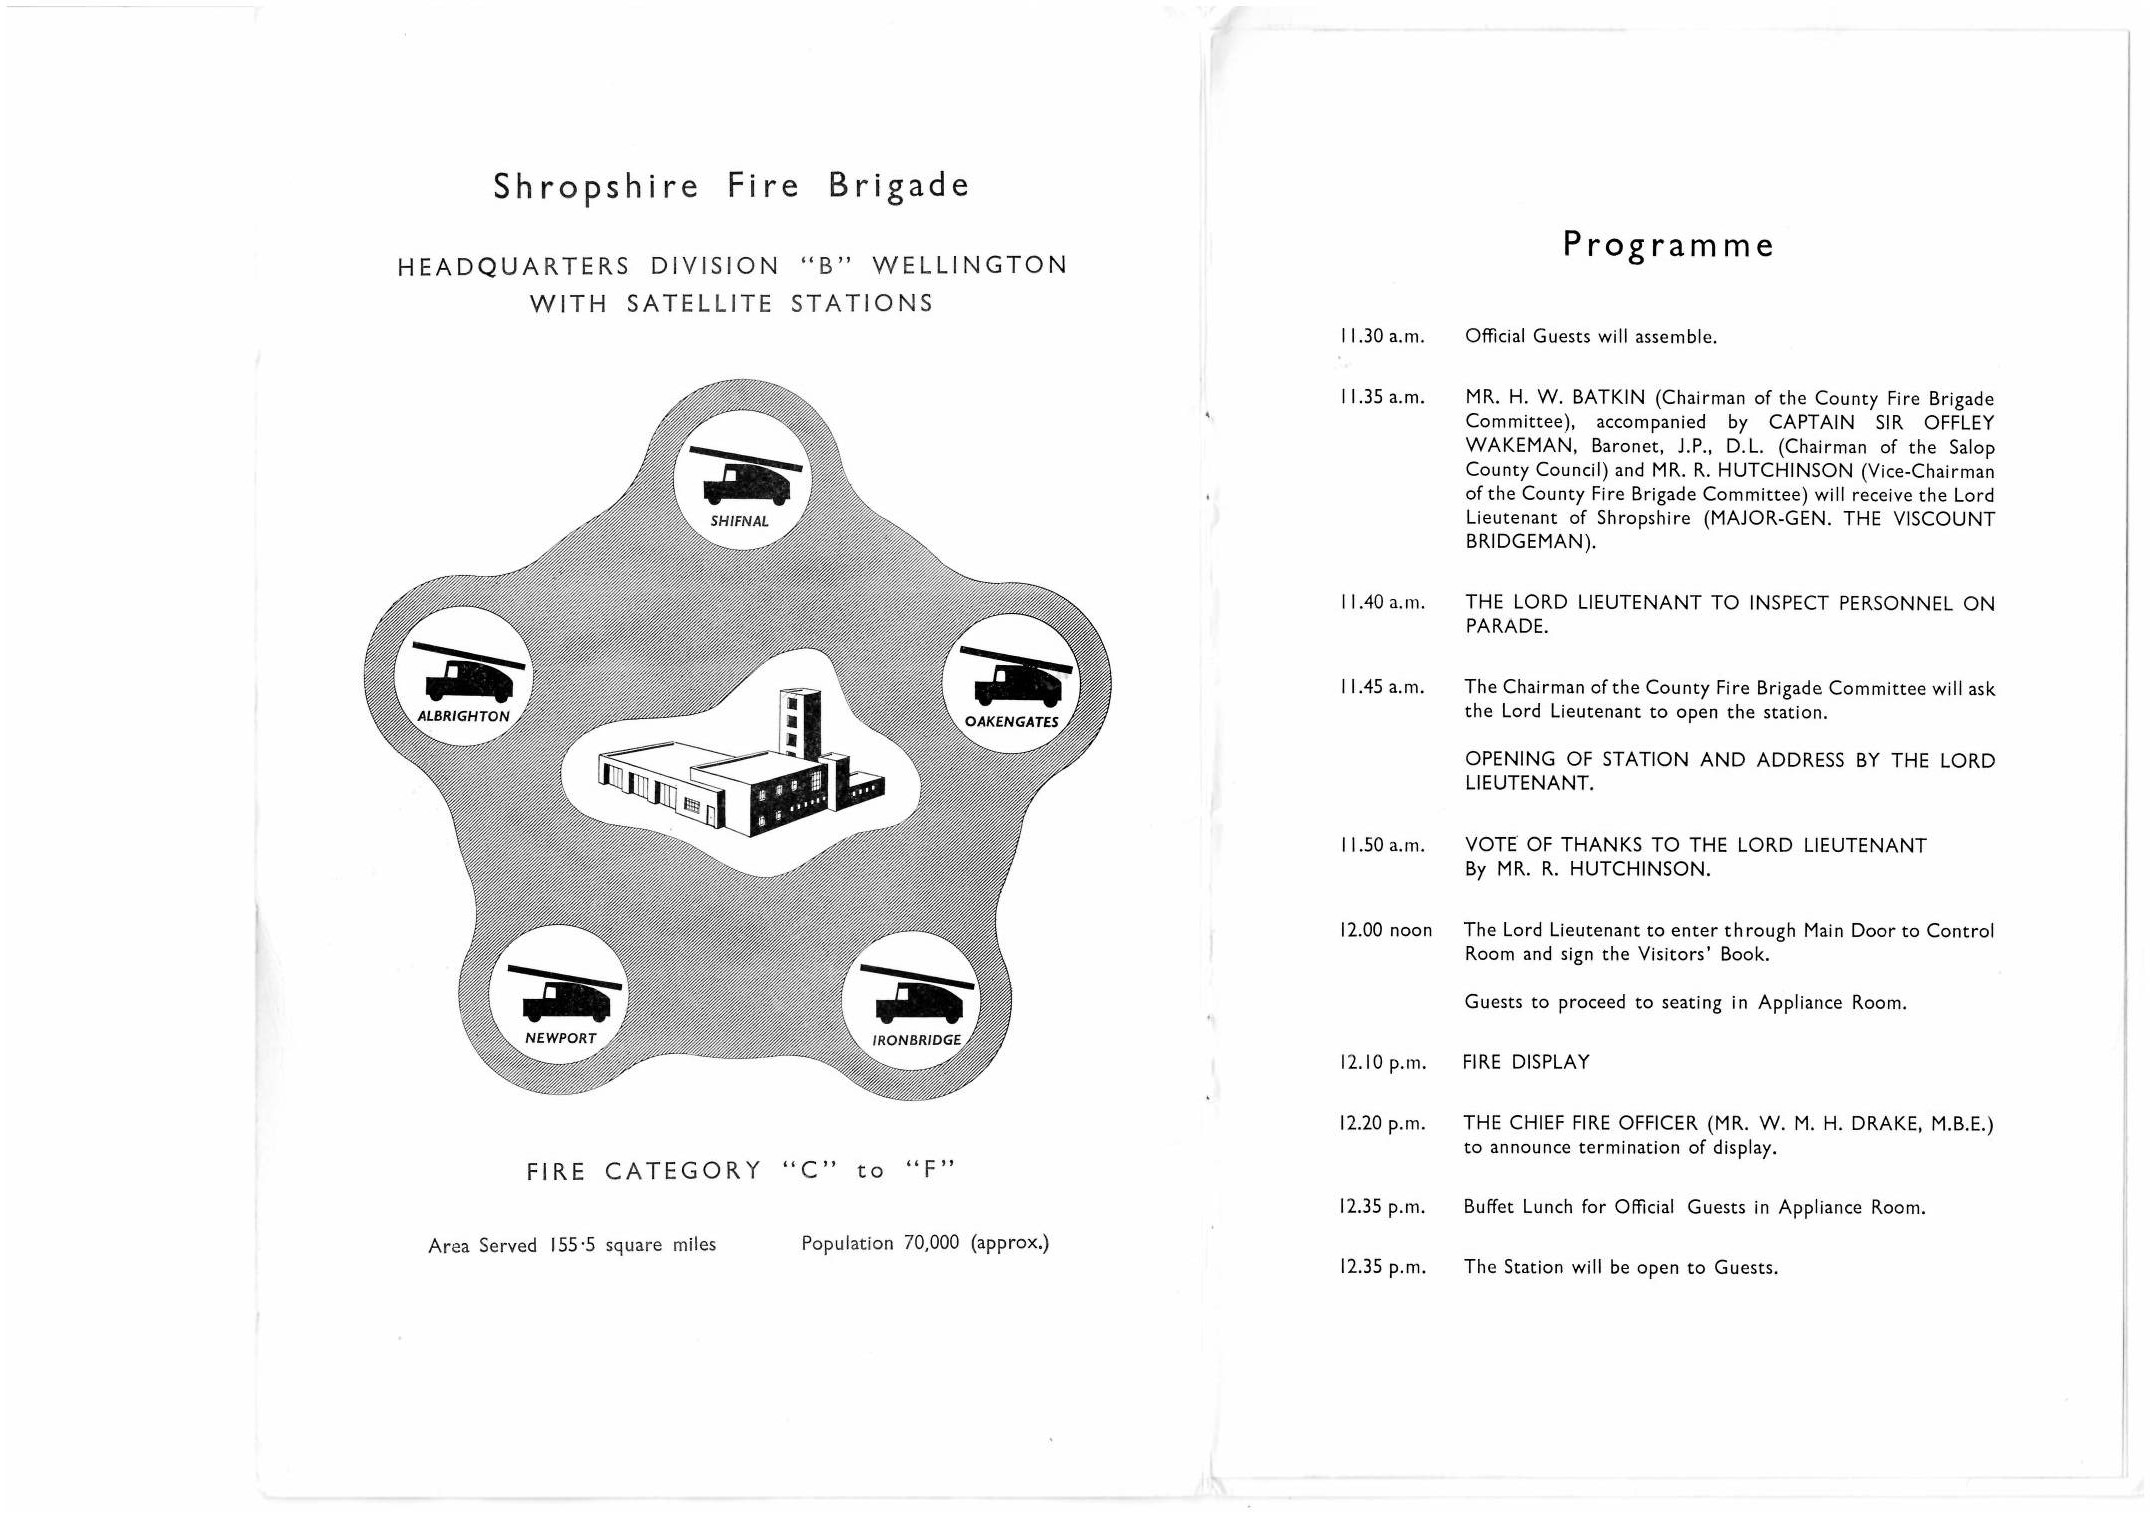 Found on ebay: The original 1953 programme for the opening of Wellington Fire Station